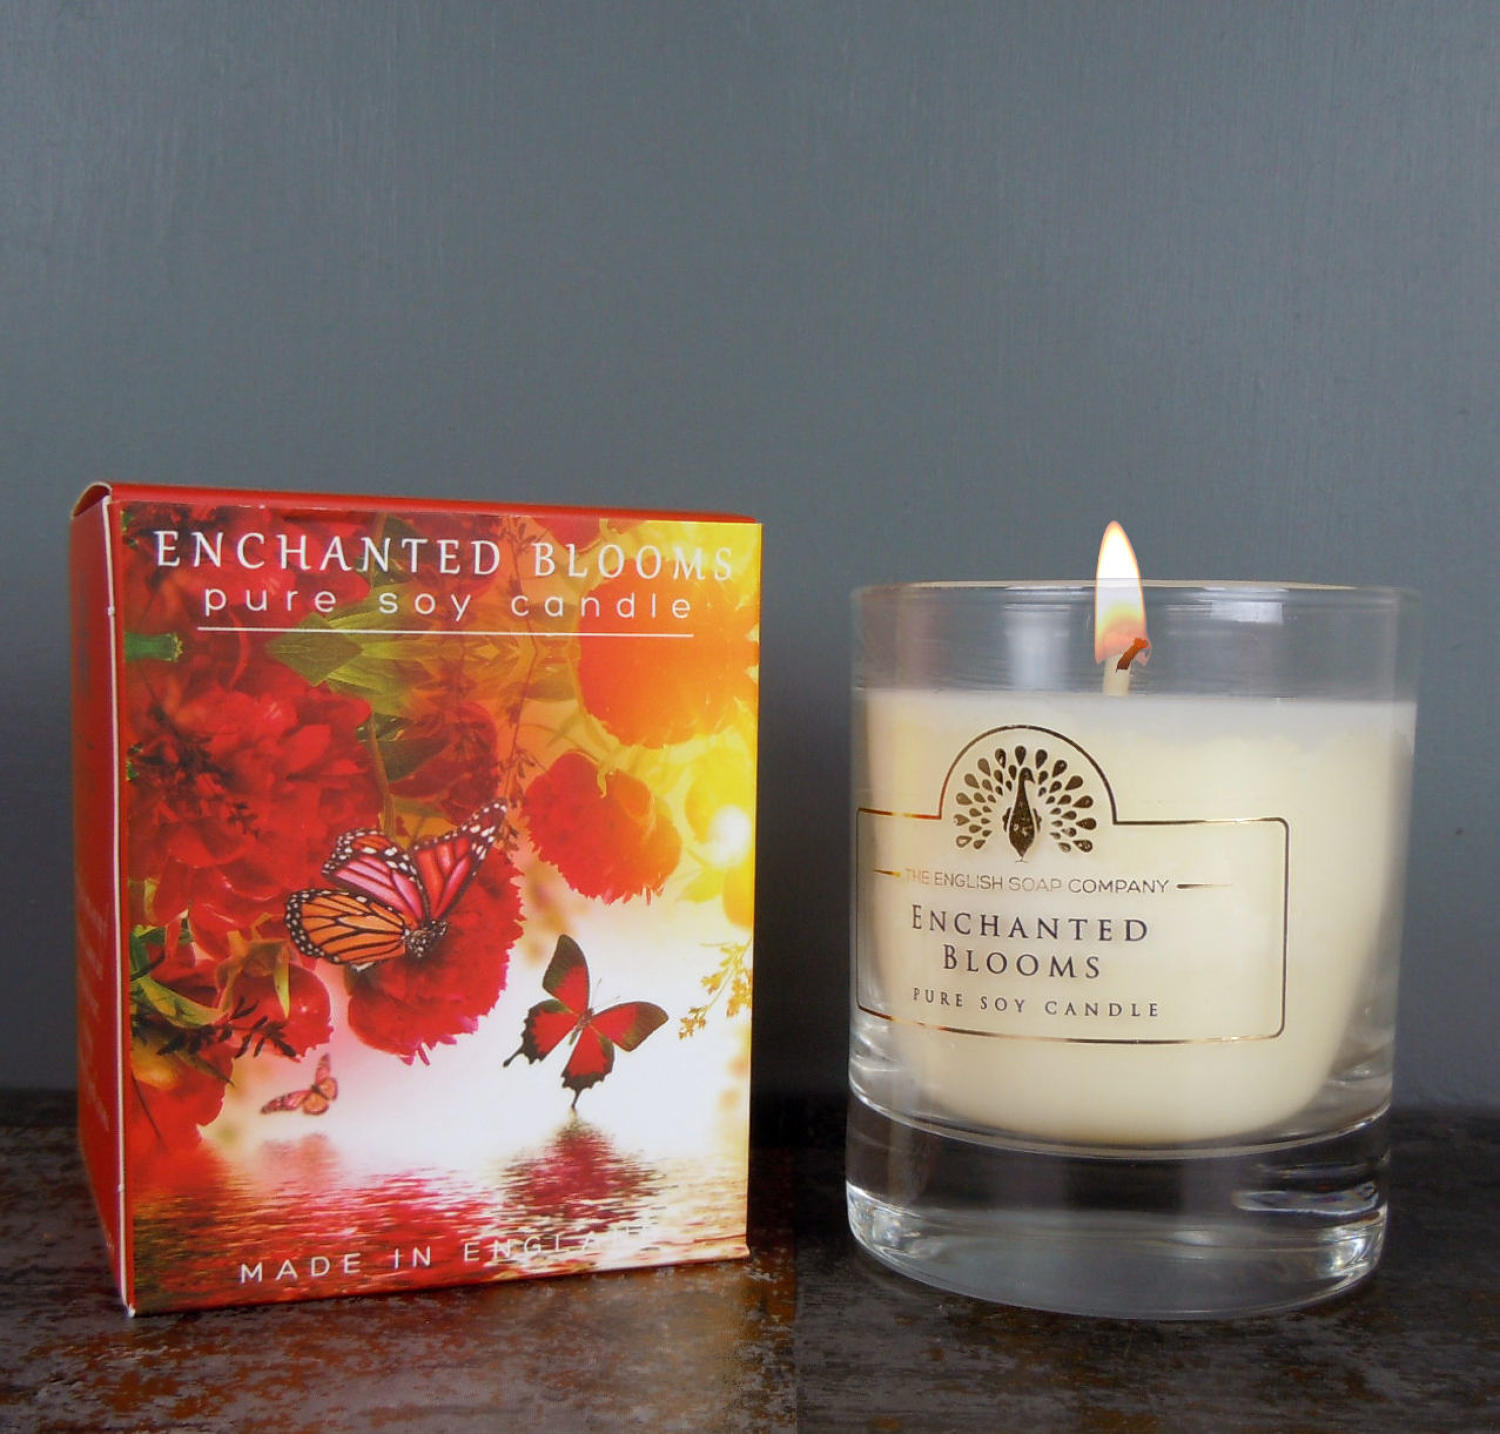 Enchanted Blooms pure soy candle